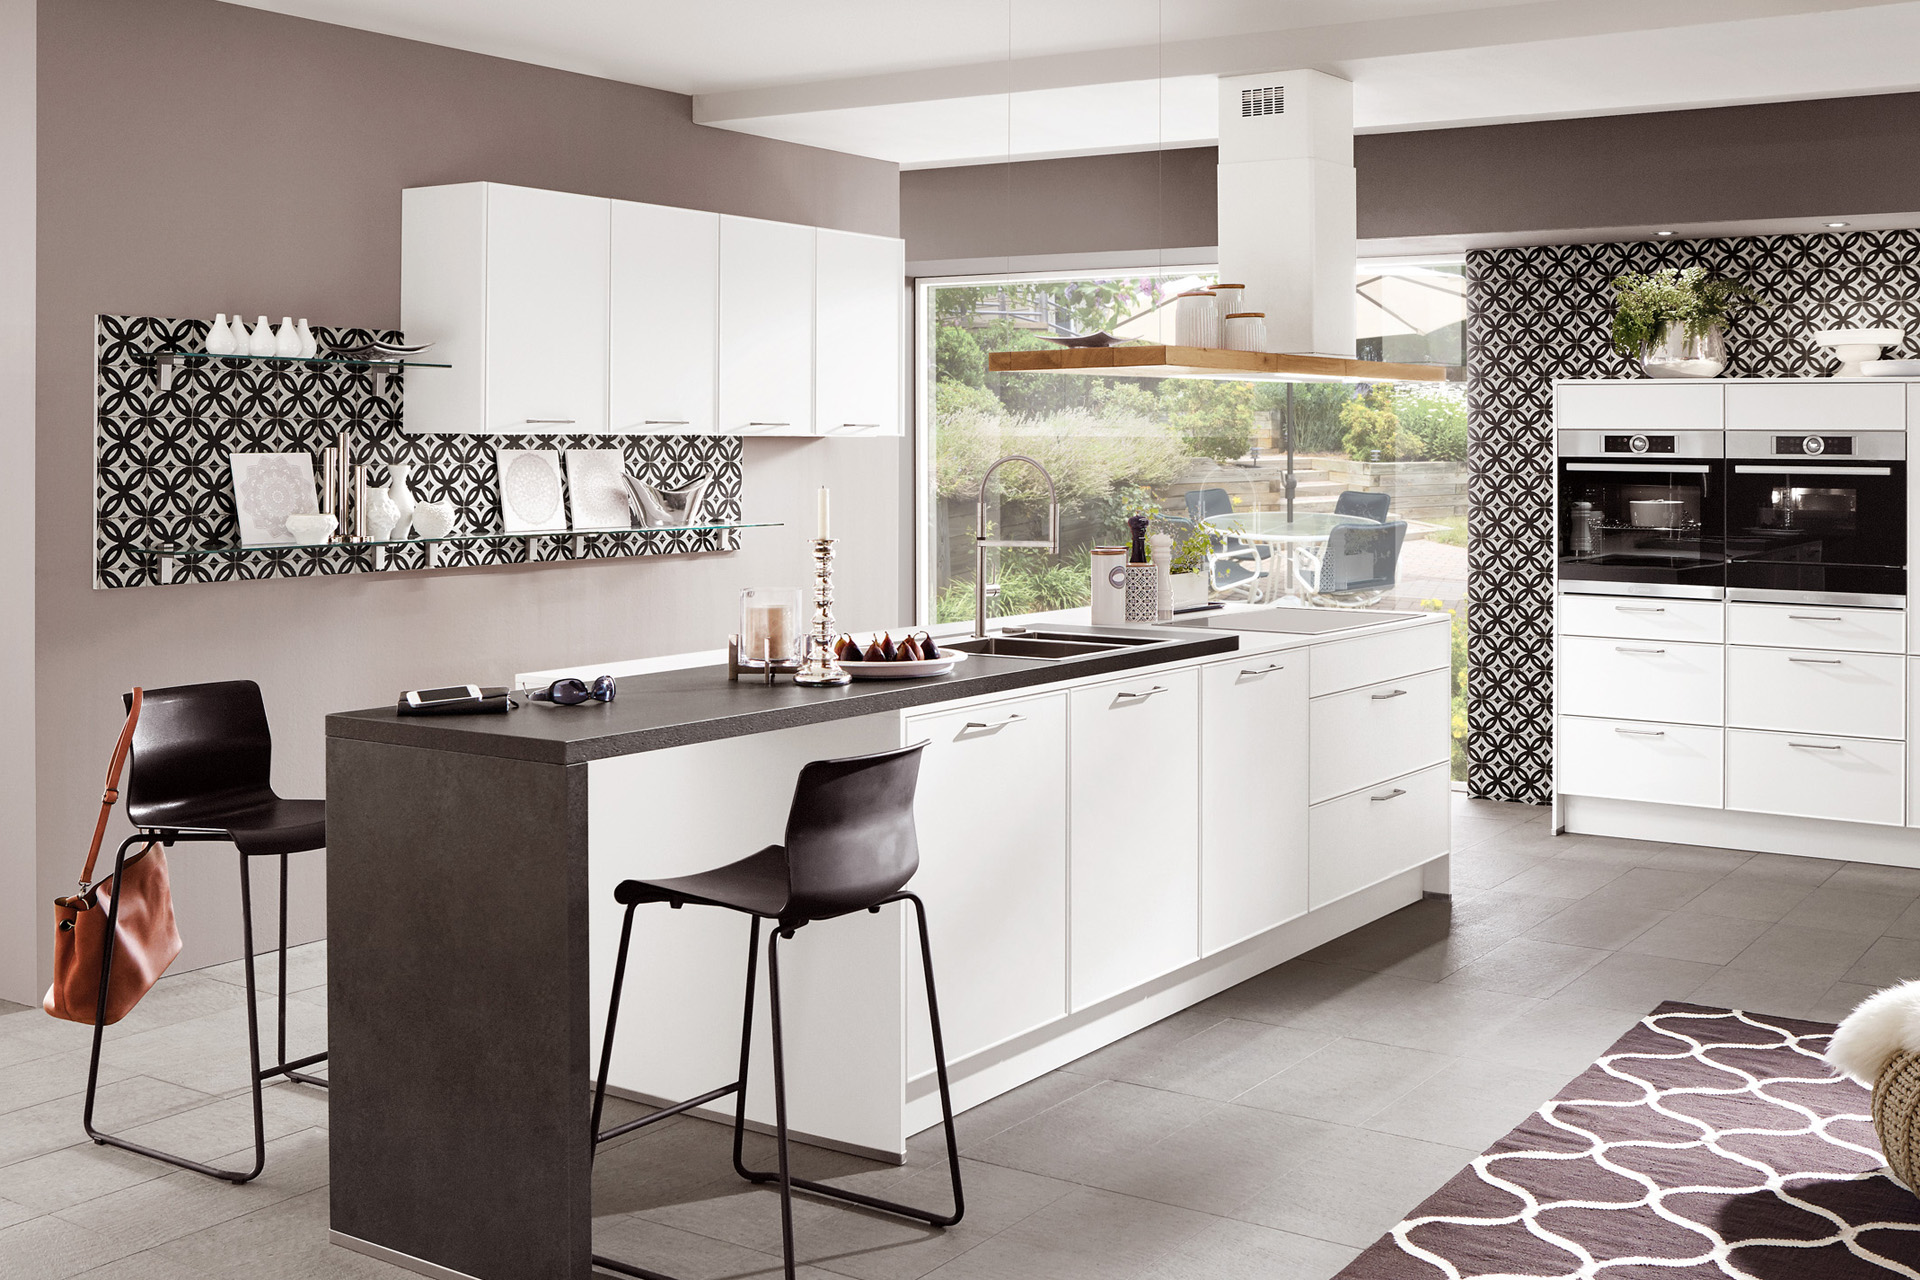 Nobilia Front Lucca I Home Kitchens Nobilia Kitchens And German Kitchens